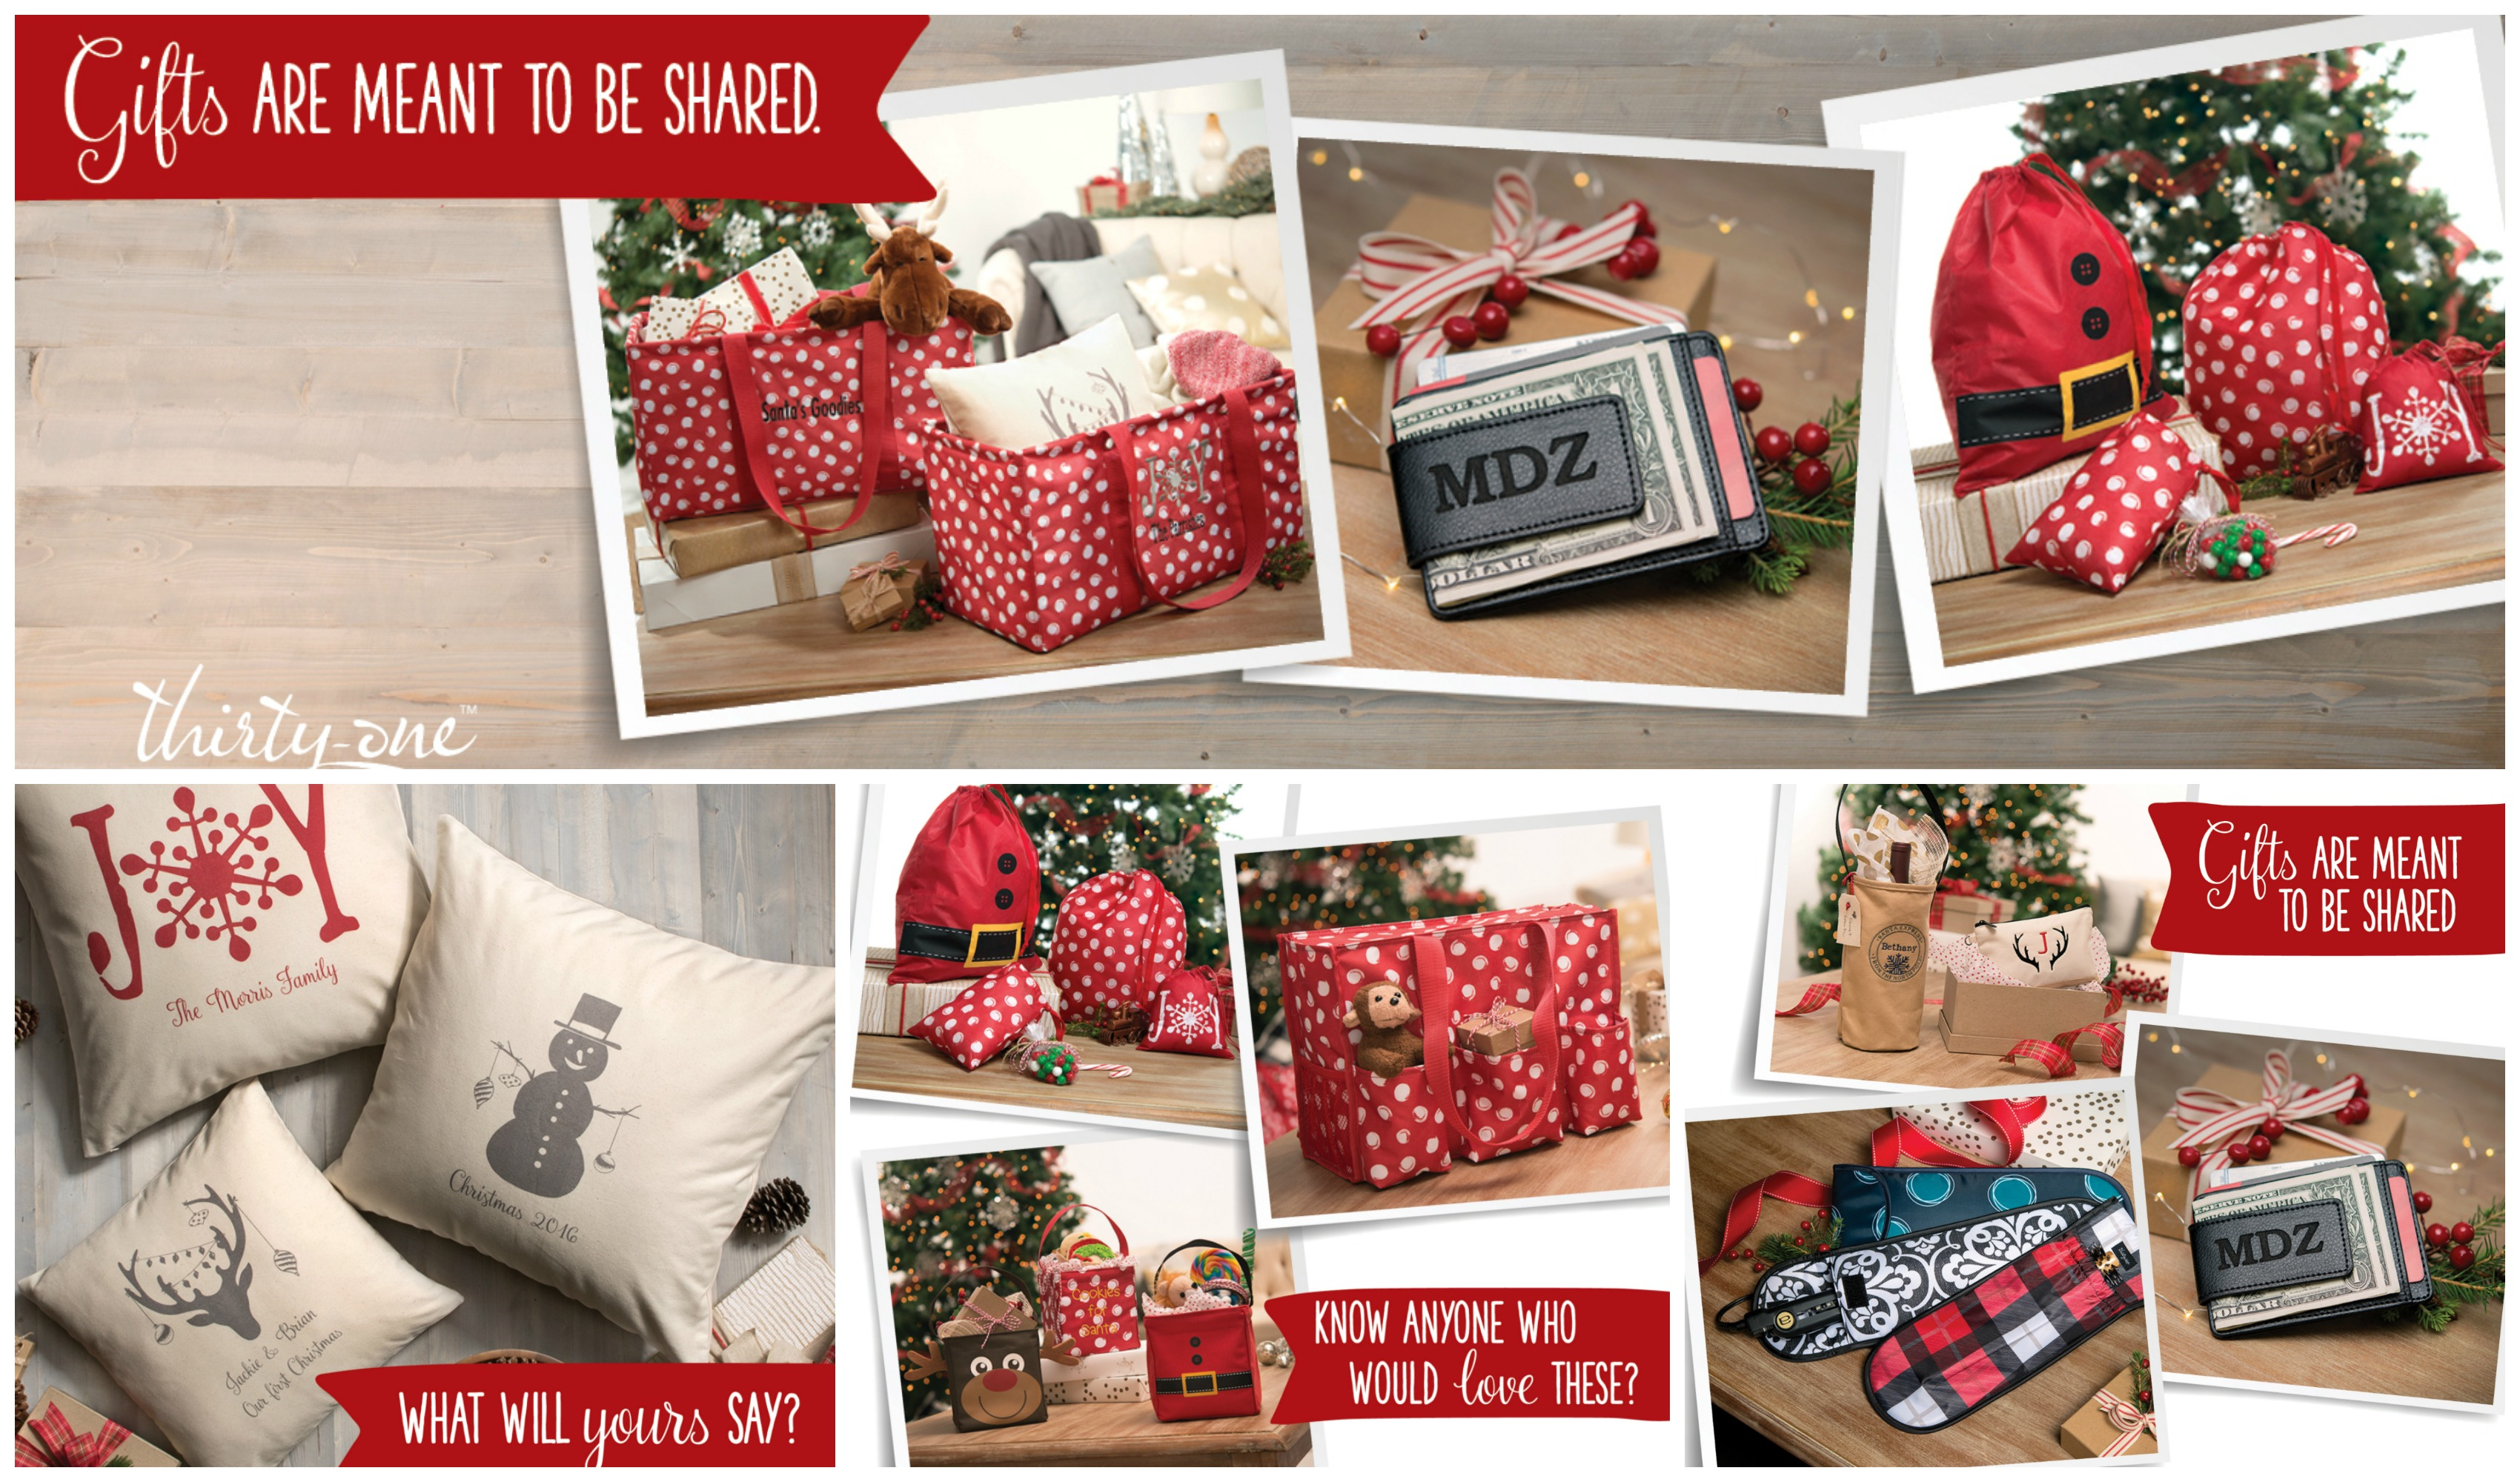 Join thirty-One, holiday guide, become a thirty-one consultant, join thirty-one for $1